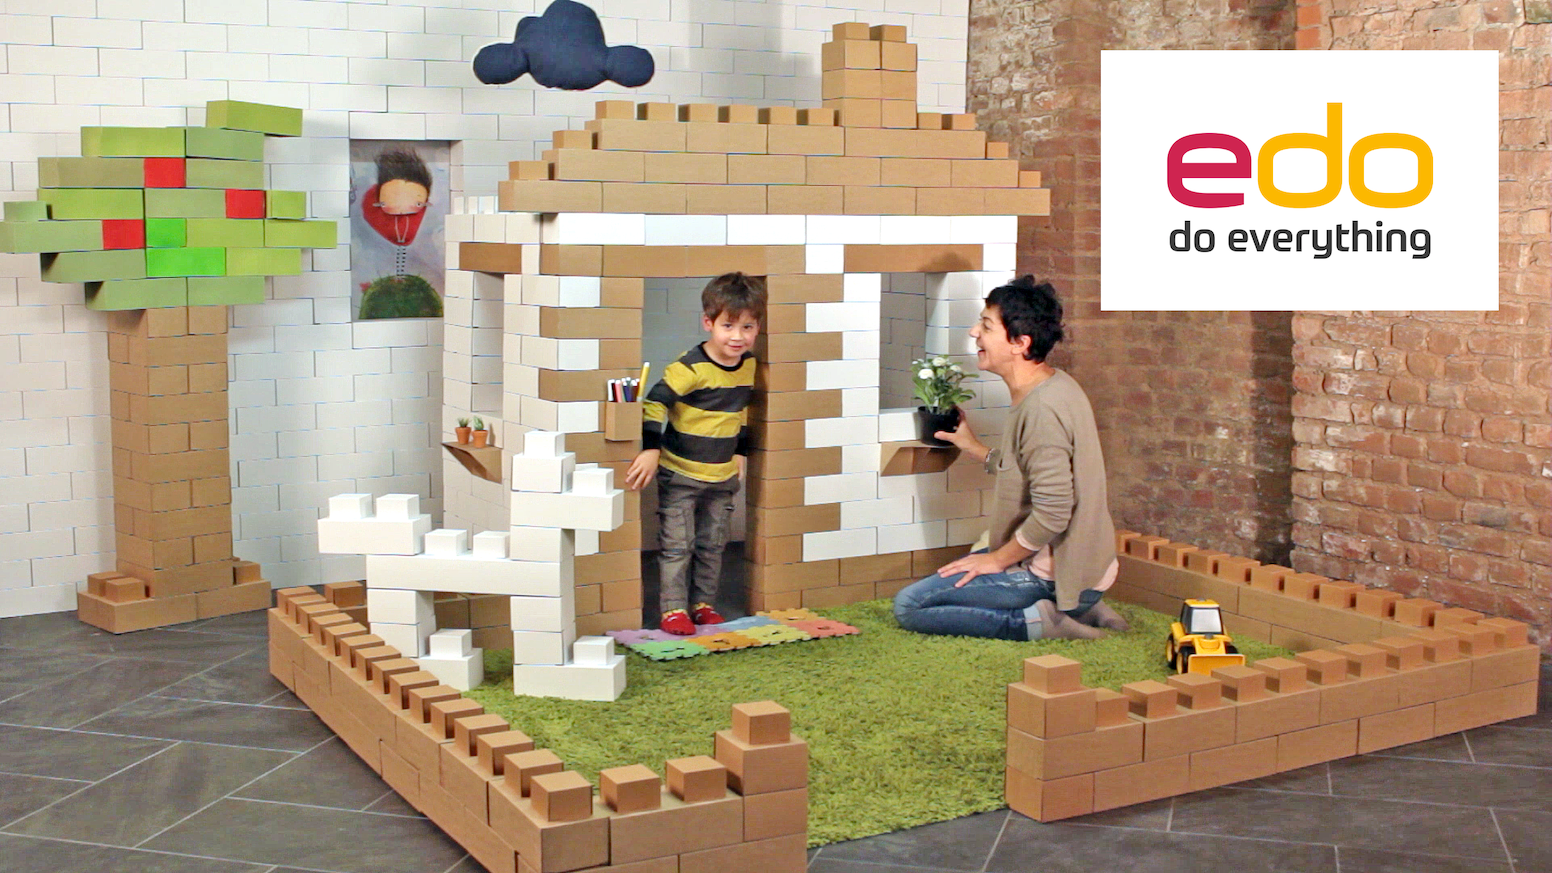 Eco-friendly, giant building blocks to fire up your children's imagination: castles, animals and robots all in one toy. Get yours now!